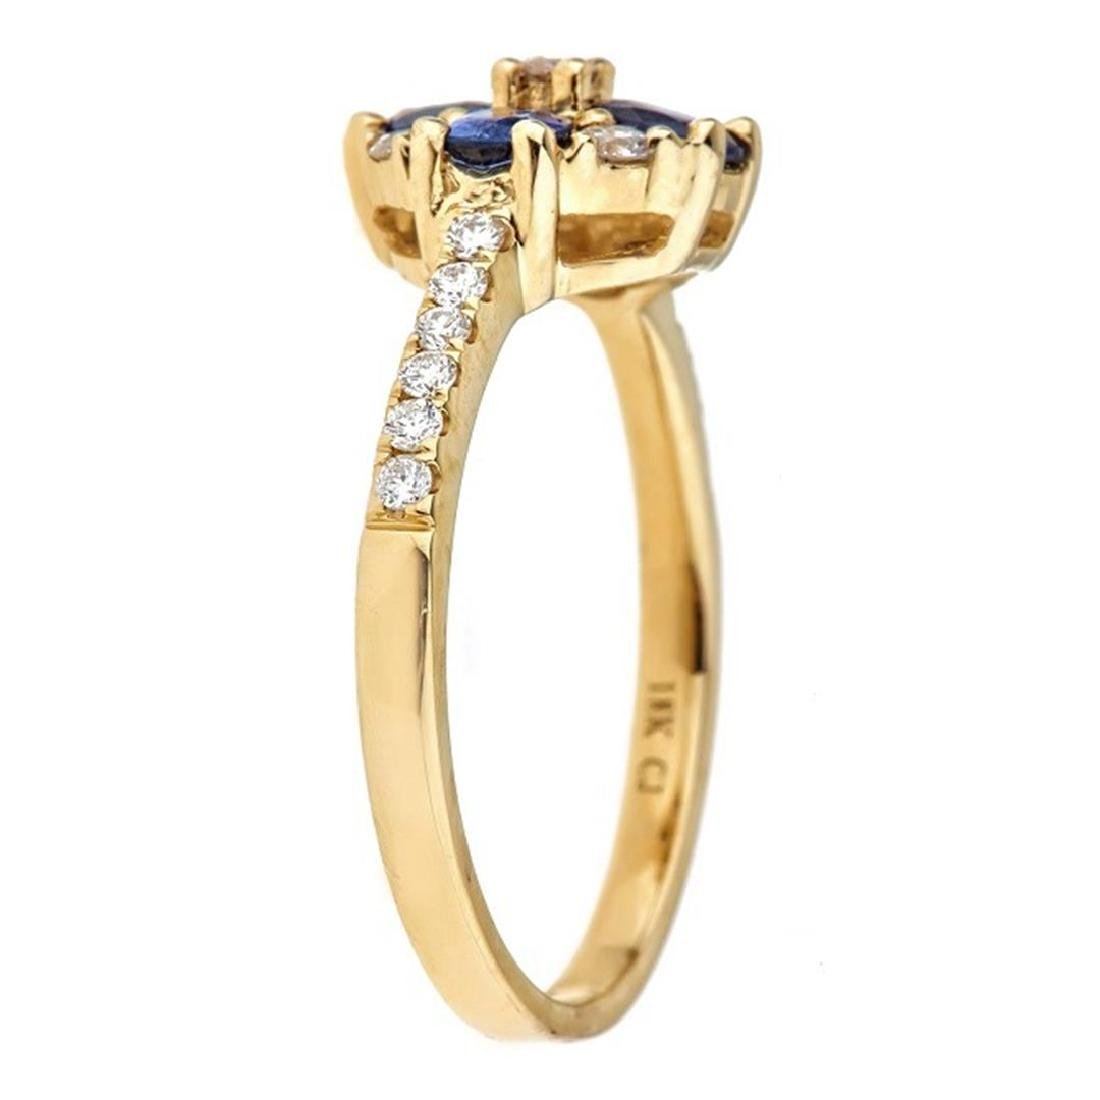 0.83 ctw Sapphire and Diamond Ring - 18KT Yellow Gold - 2